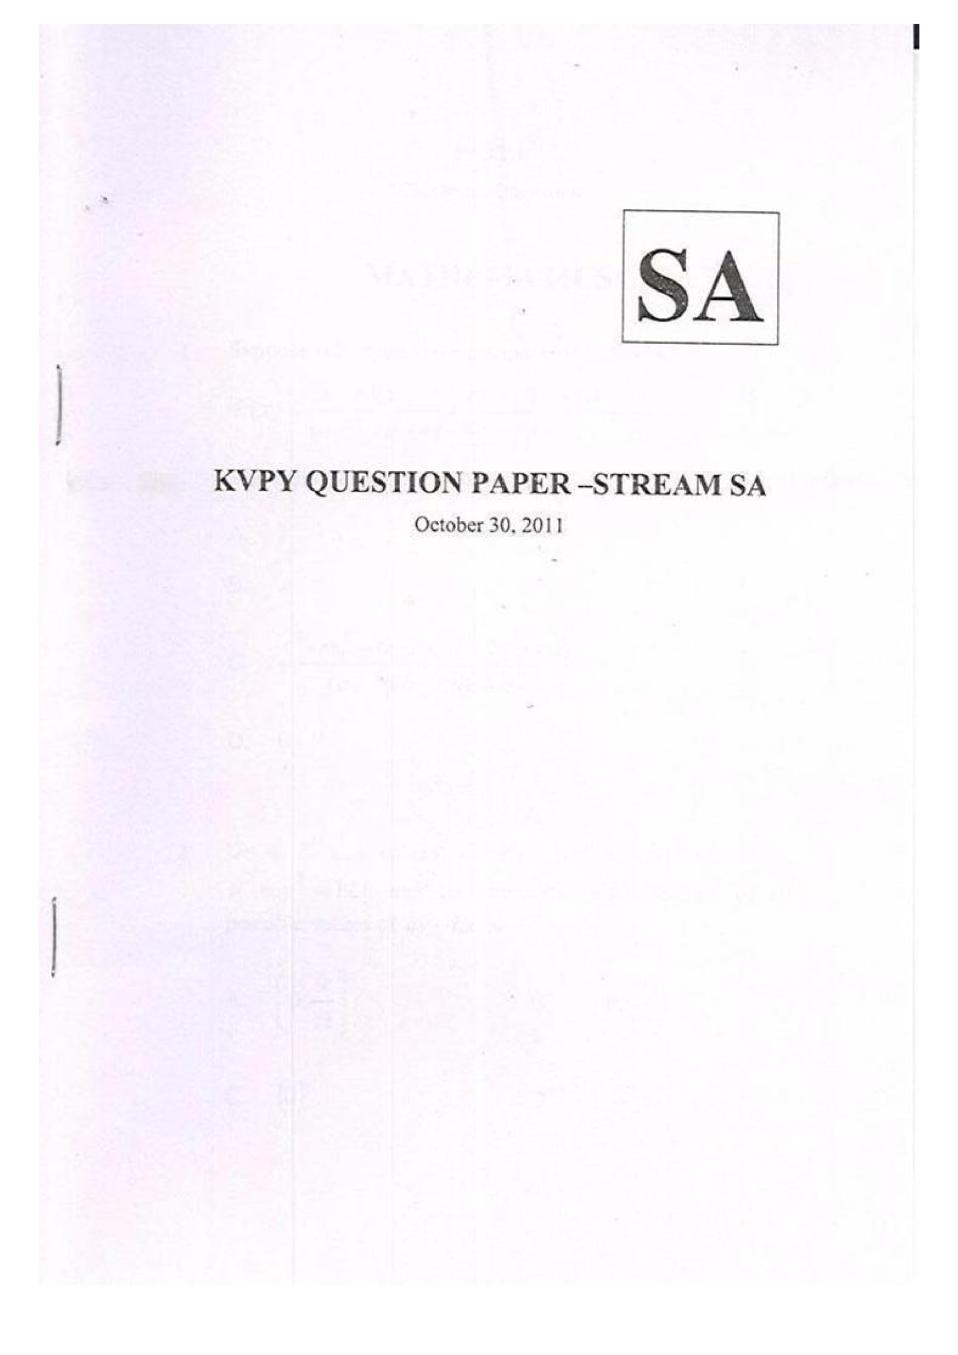 KVPY 2011 Question Paper & Answer Key for SA Stream